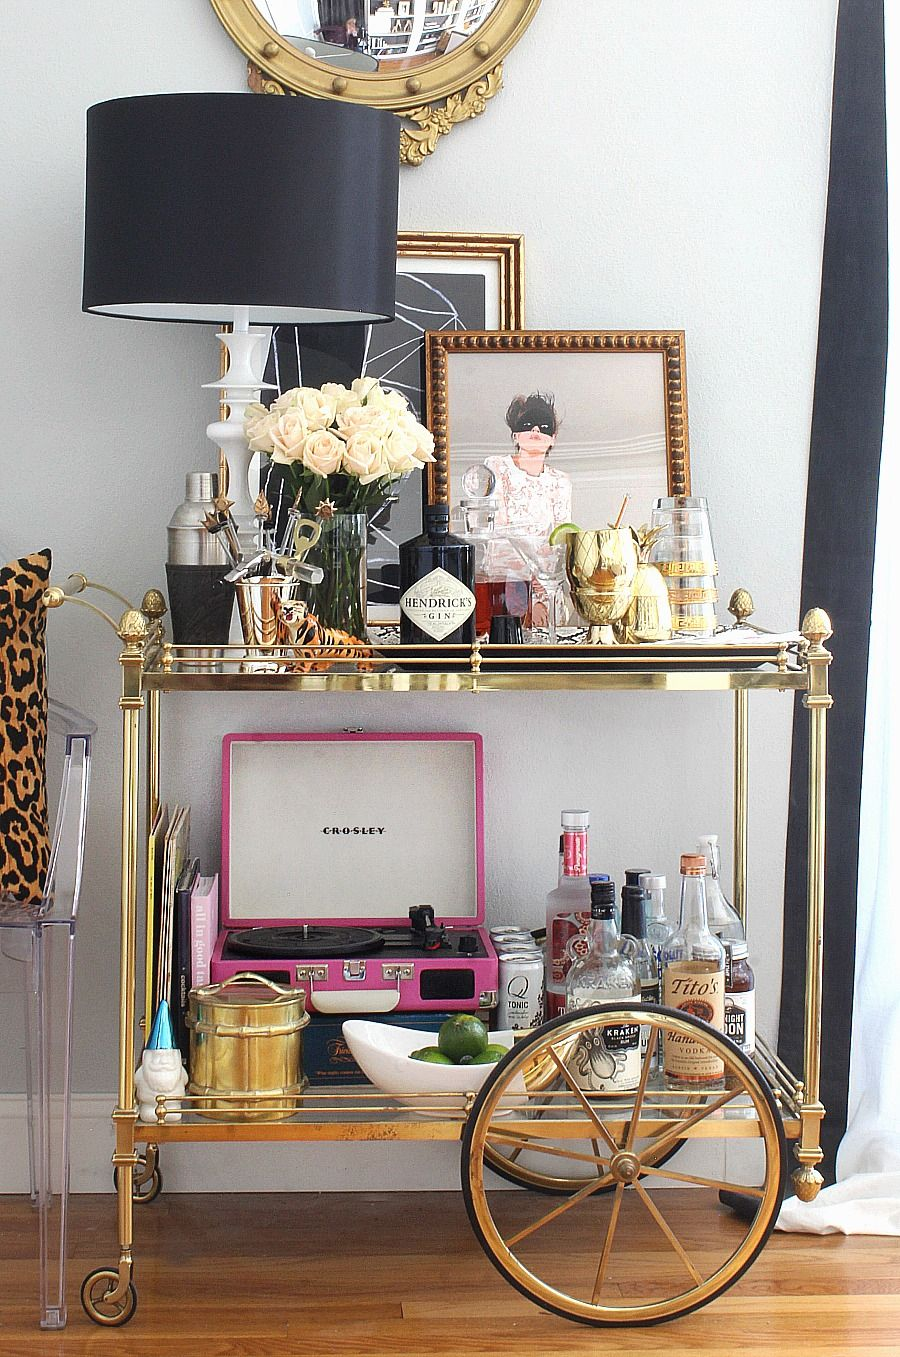 Bar cart styling ideas and tips bar cart stylinu pinterest bar